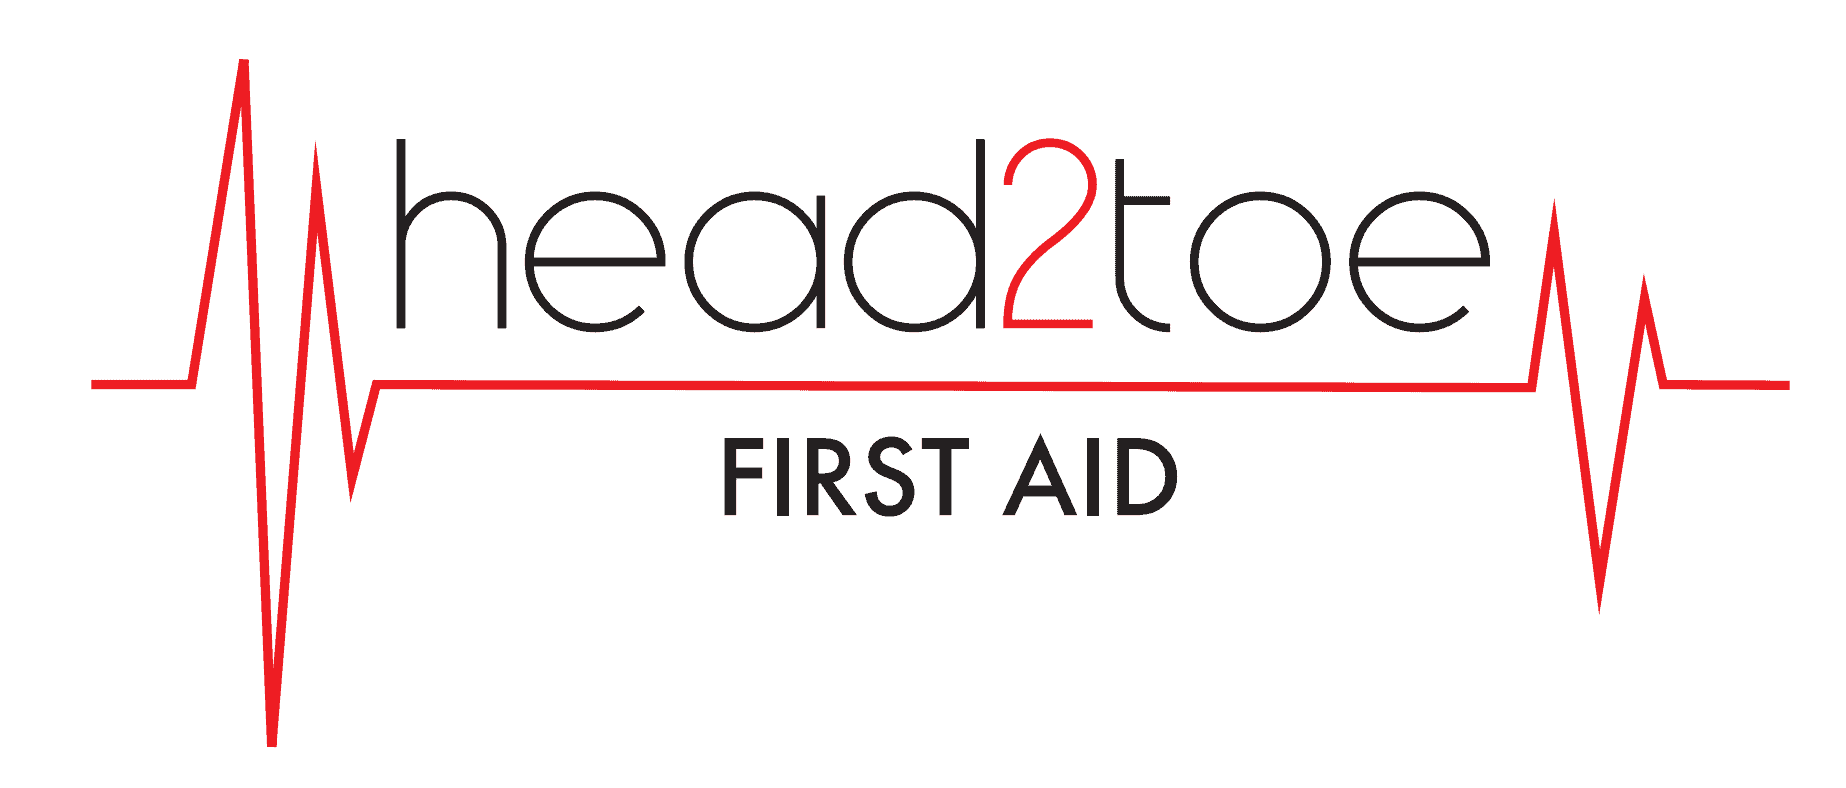 Fun, Flexible, First Aid Training for Everyone